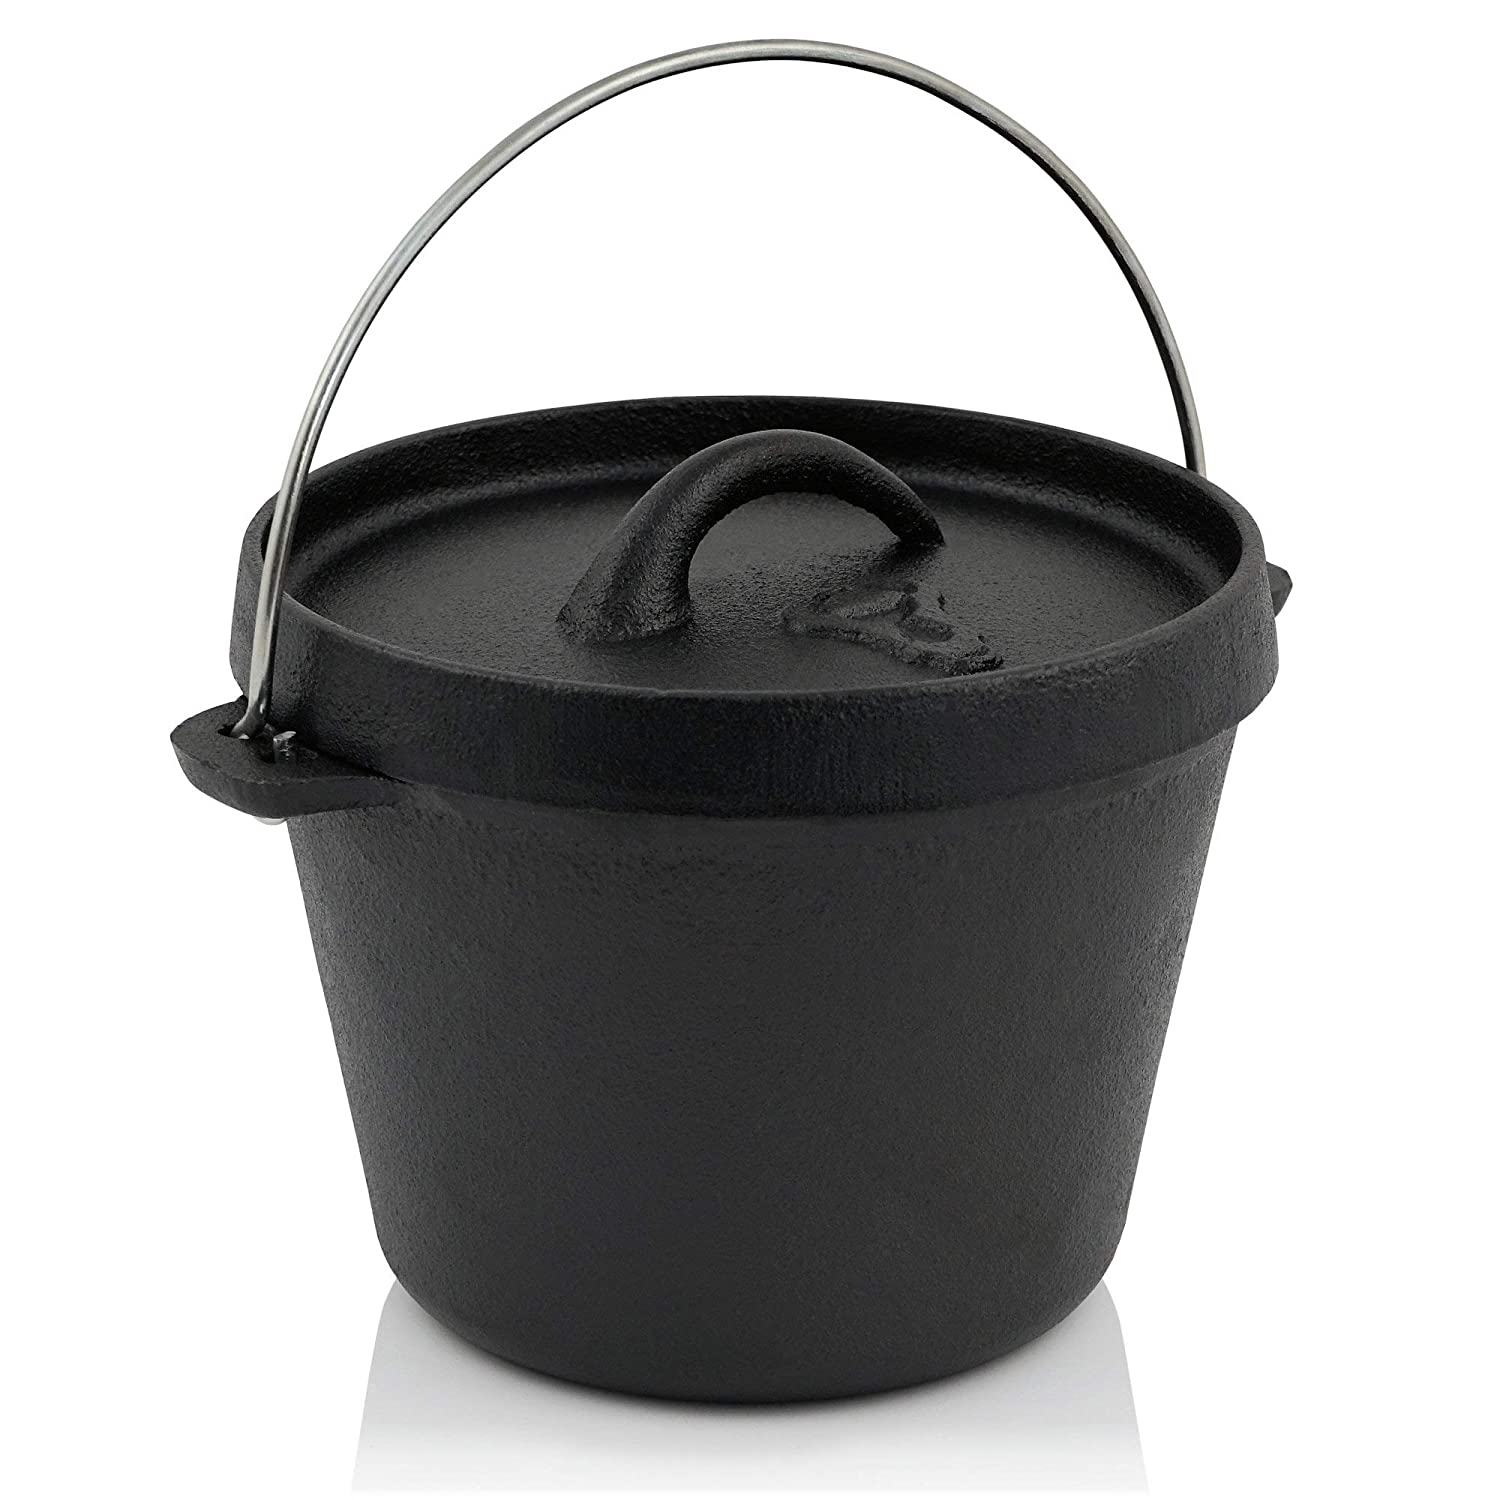 Dutch Oven w// Lid Camping Outdoor Cooking Camp Fire Fireplace Cast Iron 5 Qt Pot